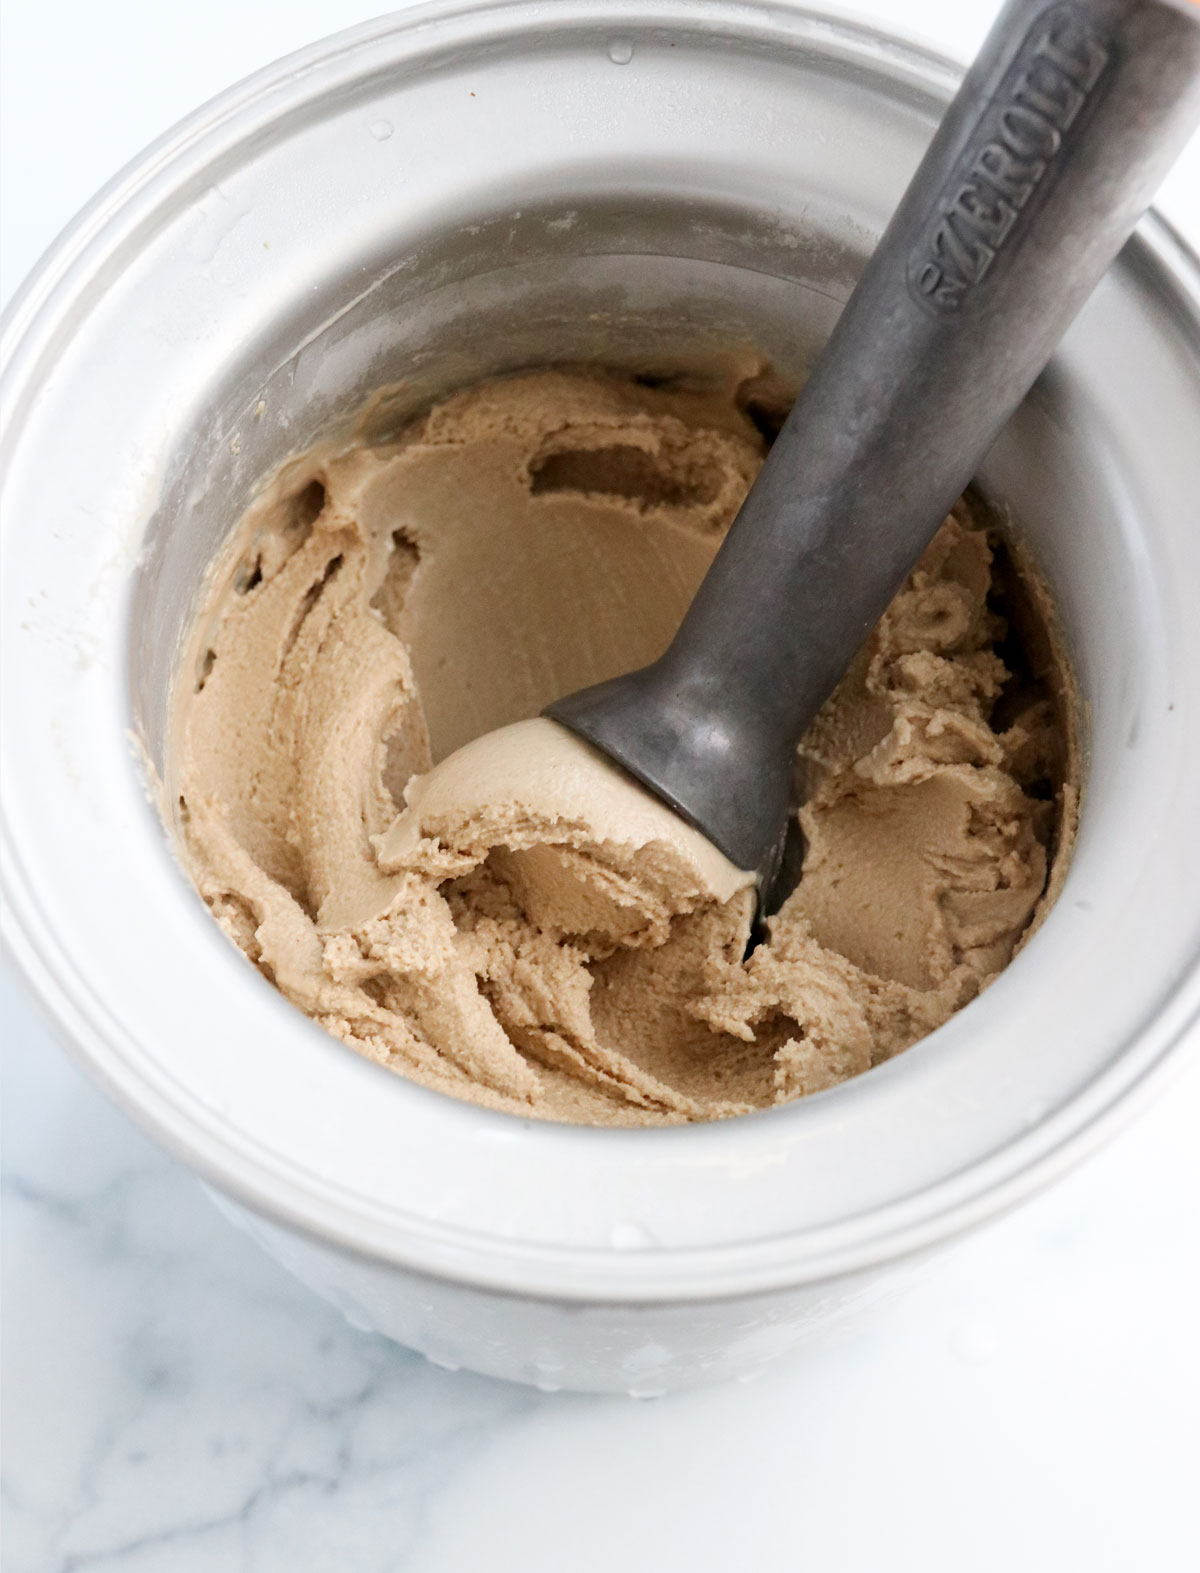 coffee ice cream ready to serve from the machine